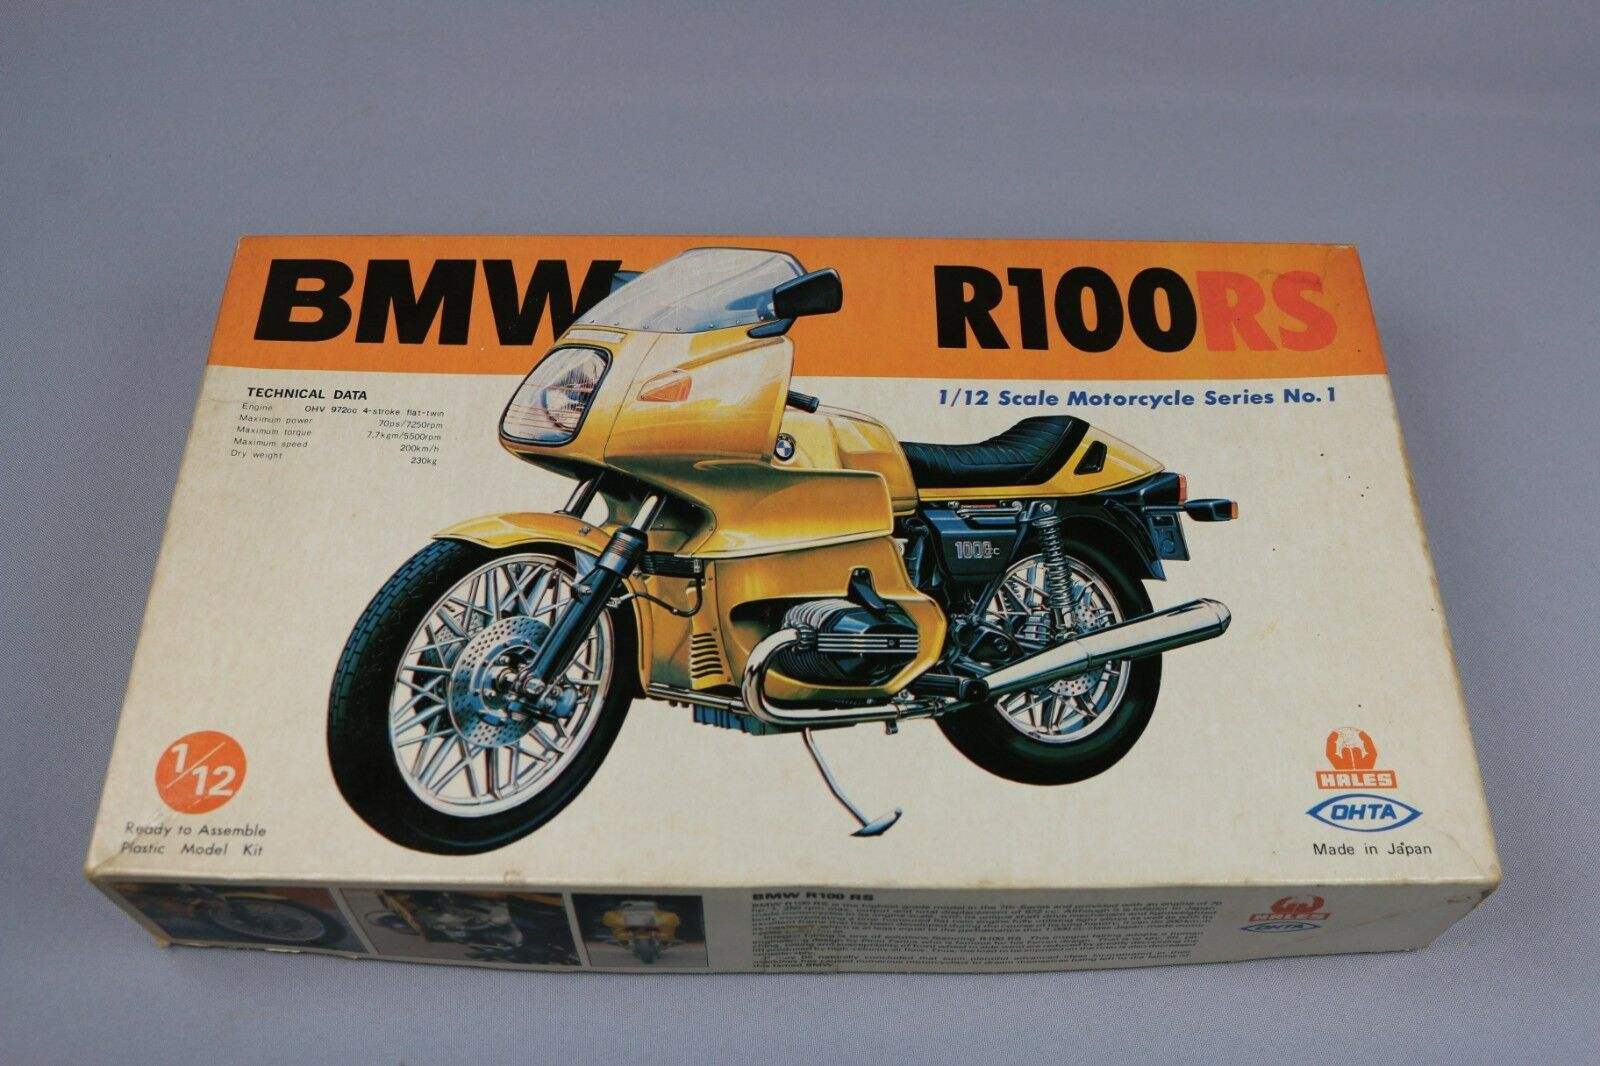 ZF1033 Hales Ohta  maquette M21-1000 BMW R100RS Motorcycle Series No. 1